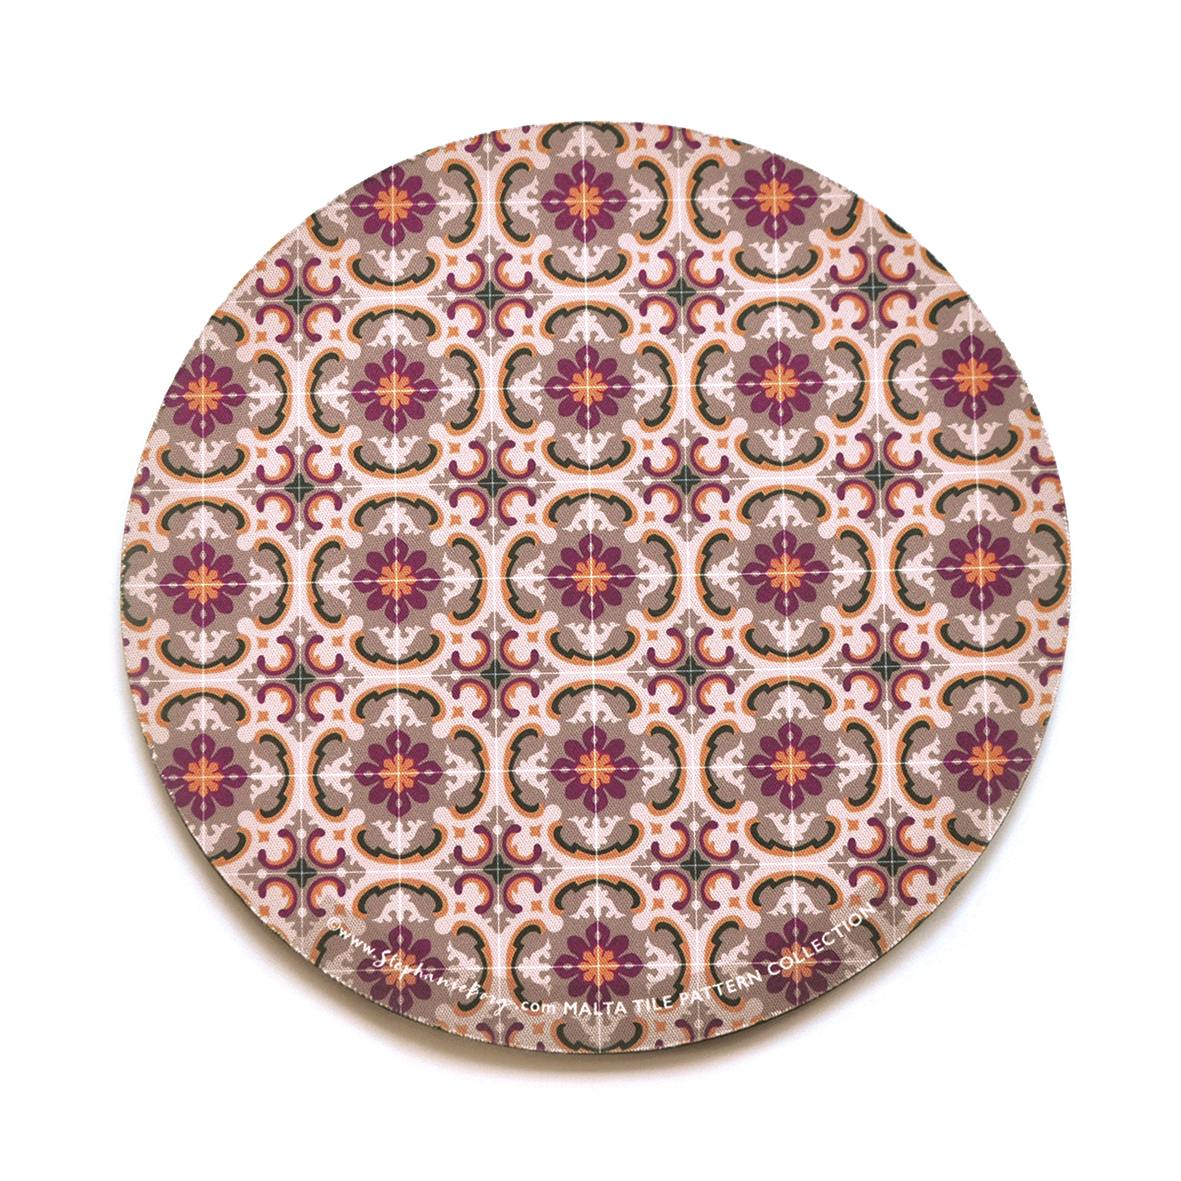 Mousepad with Maltese Tile Patterns, pattern no.11